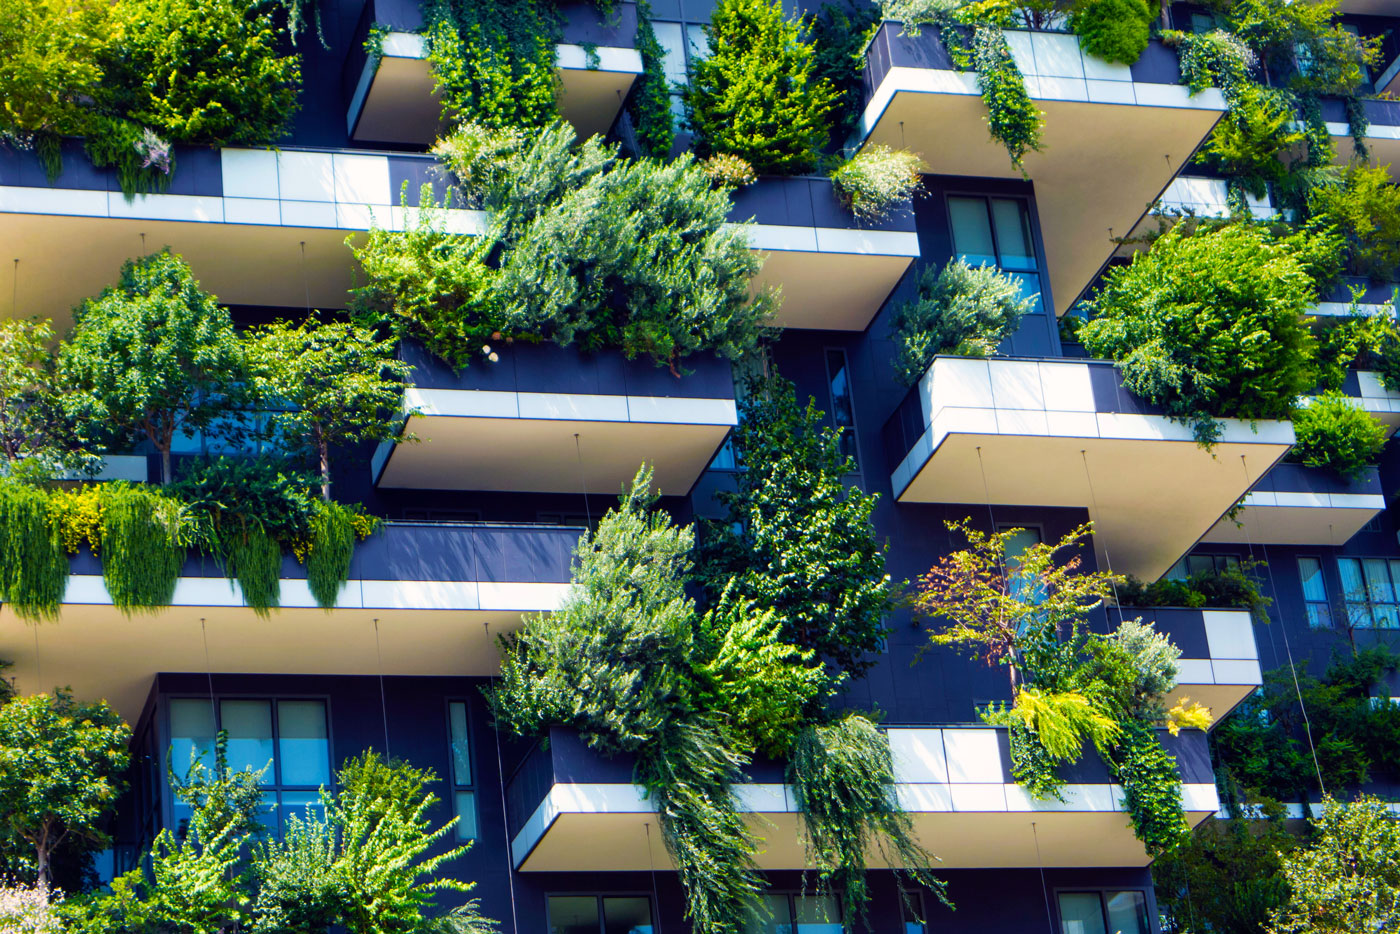 Bosco verticale milano stock photos and pictures